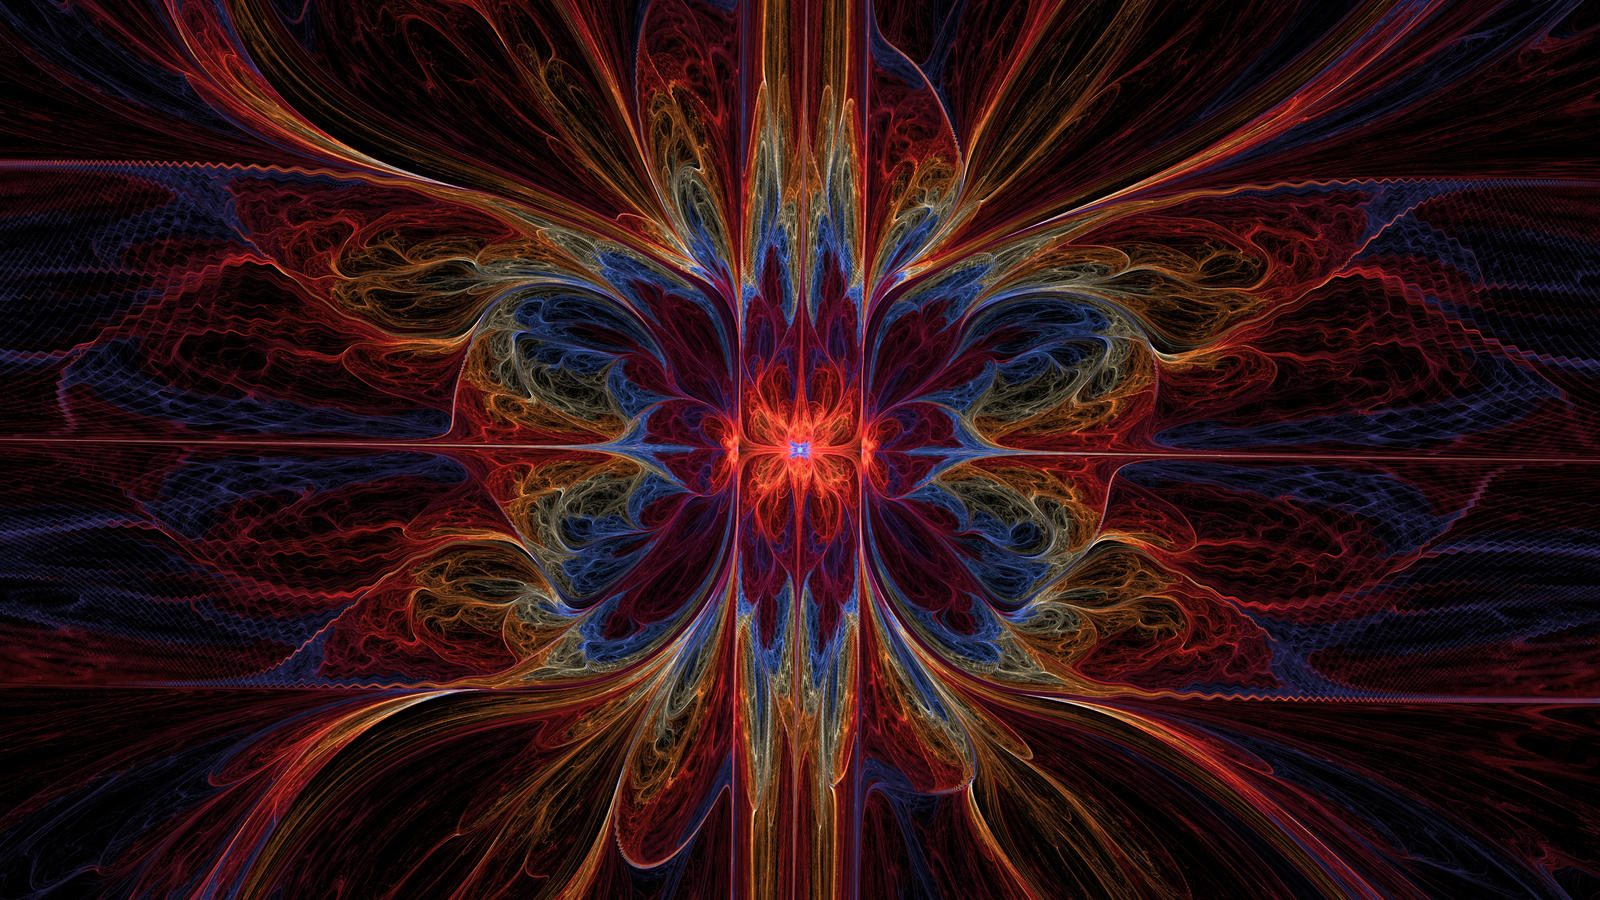 Psychedelic emination hd wallpaper by trip artist on deviantart - Psychedelic wallpaper hd ...